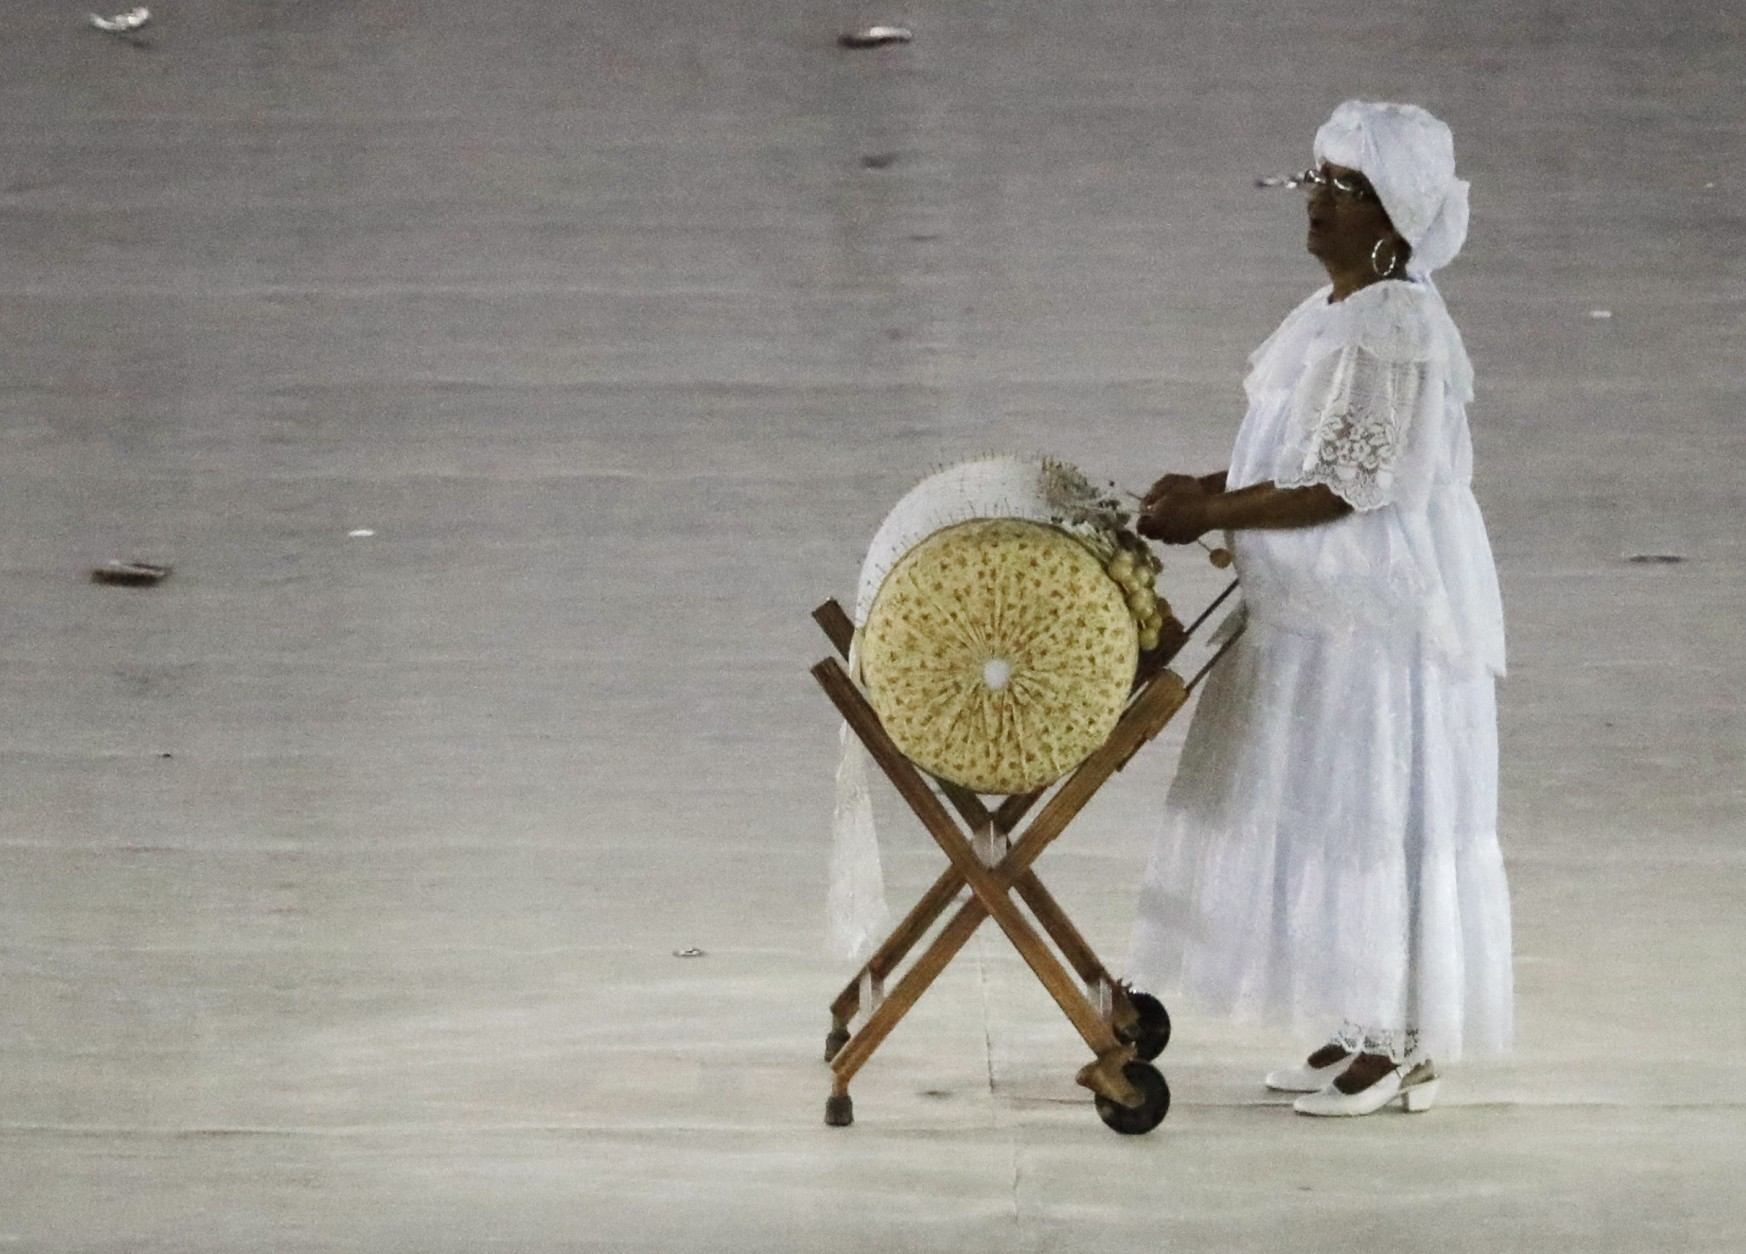 A musician performs during the closing ceremony in the Maracana stadium at the 2016 Summer Olympics in Rio de Janeiro, Brazil, Sunday, Aug. 21, 2016. (AP Photo/Charlie Riedel)